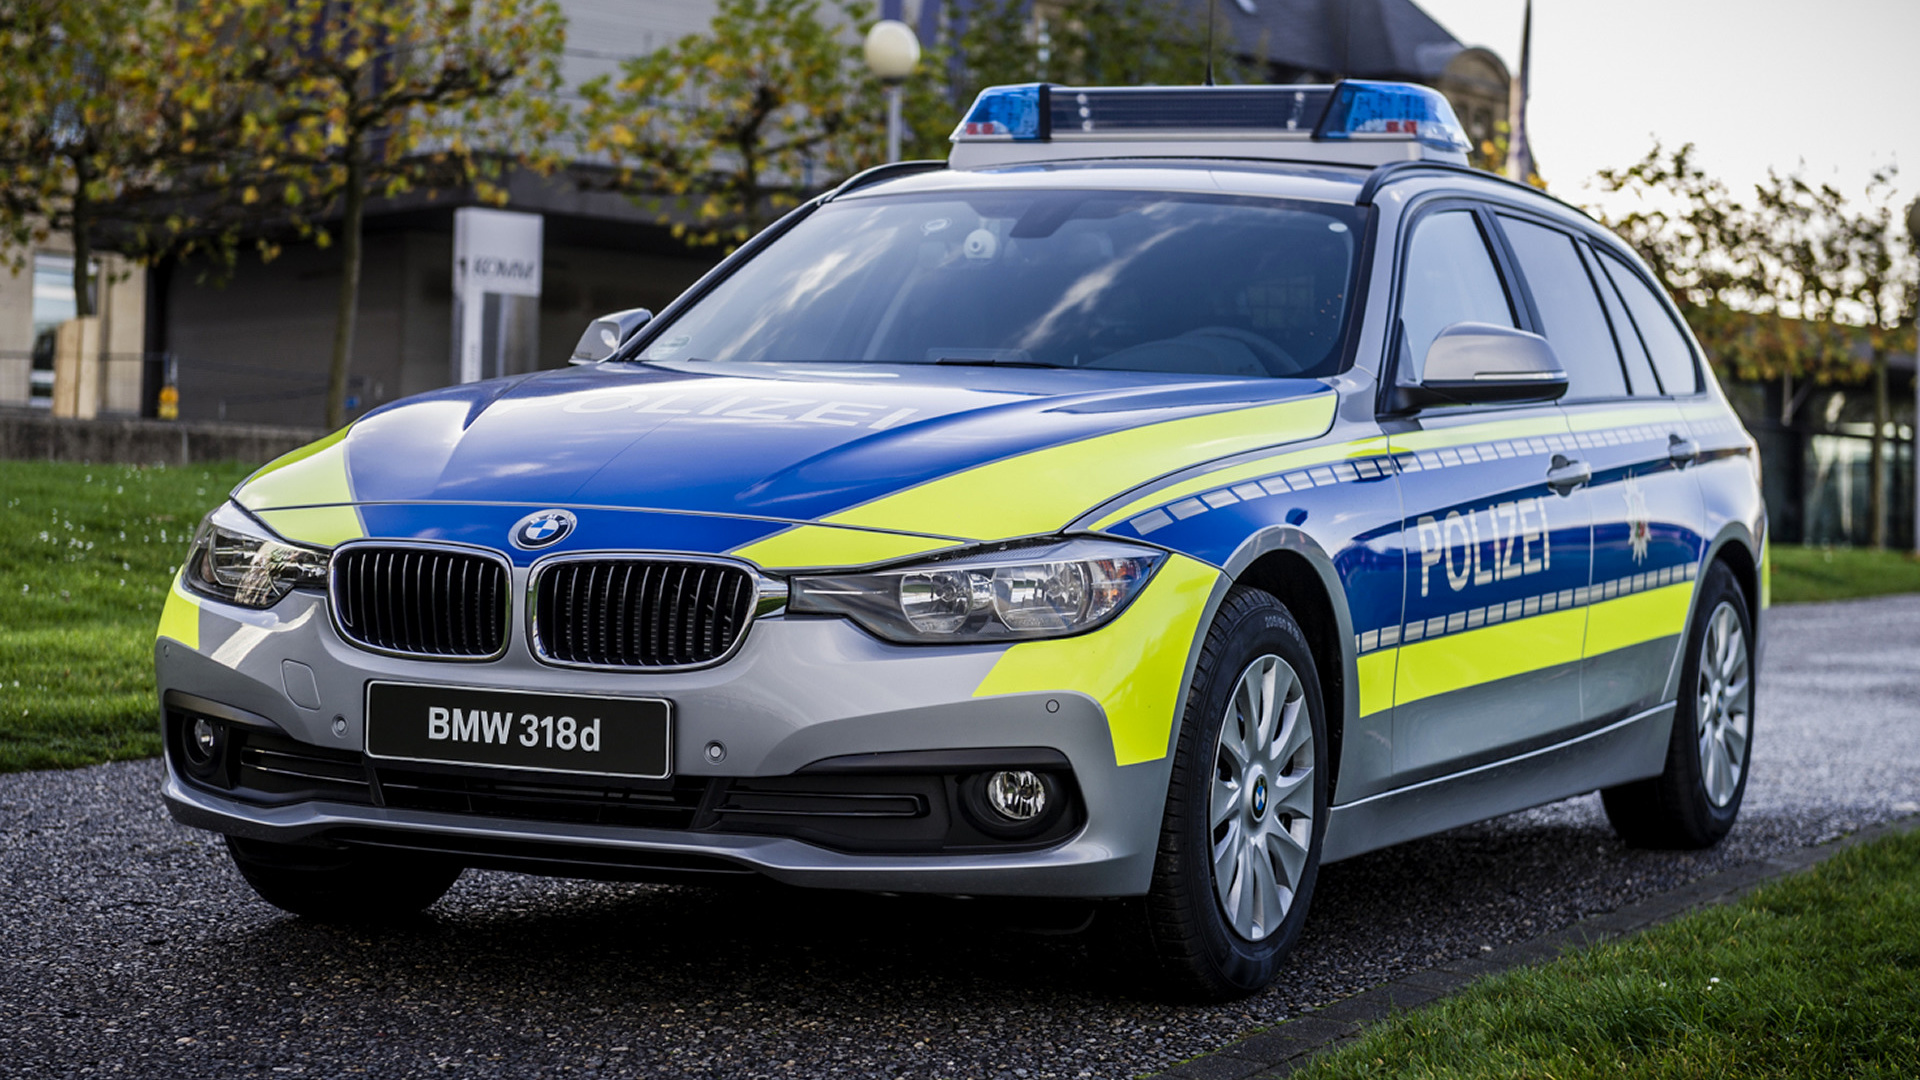 BMW 3 Series Touring Polizei (2016) Wallpapers and HD ...